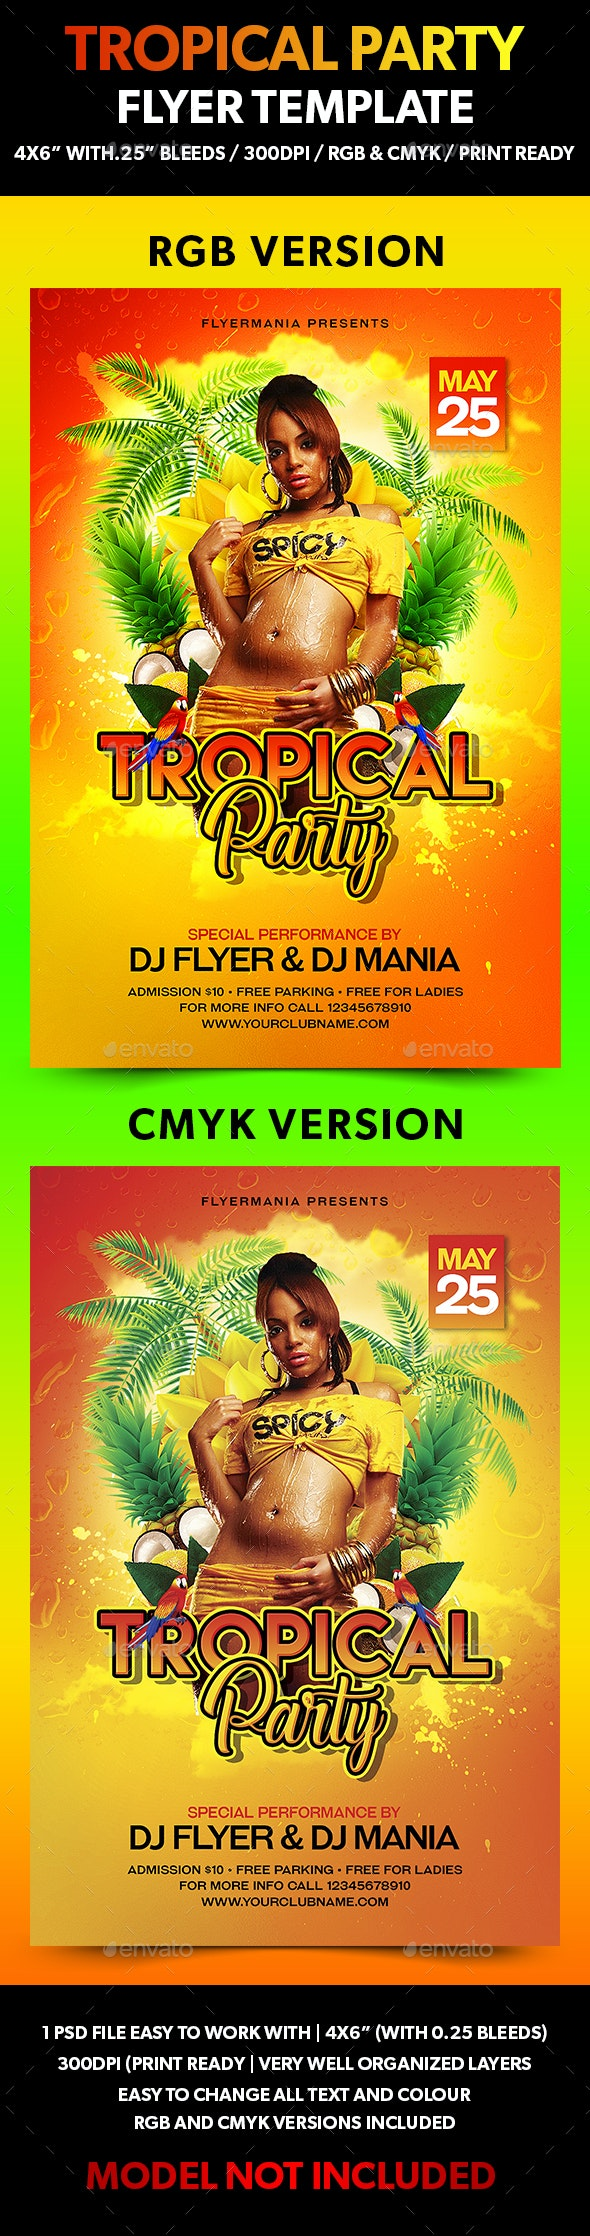 Tropical Party Flyer Template - Flyers Print Templates